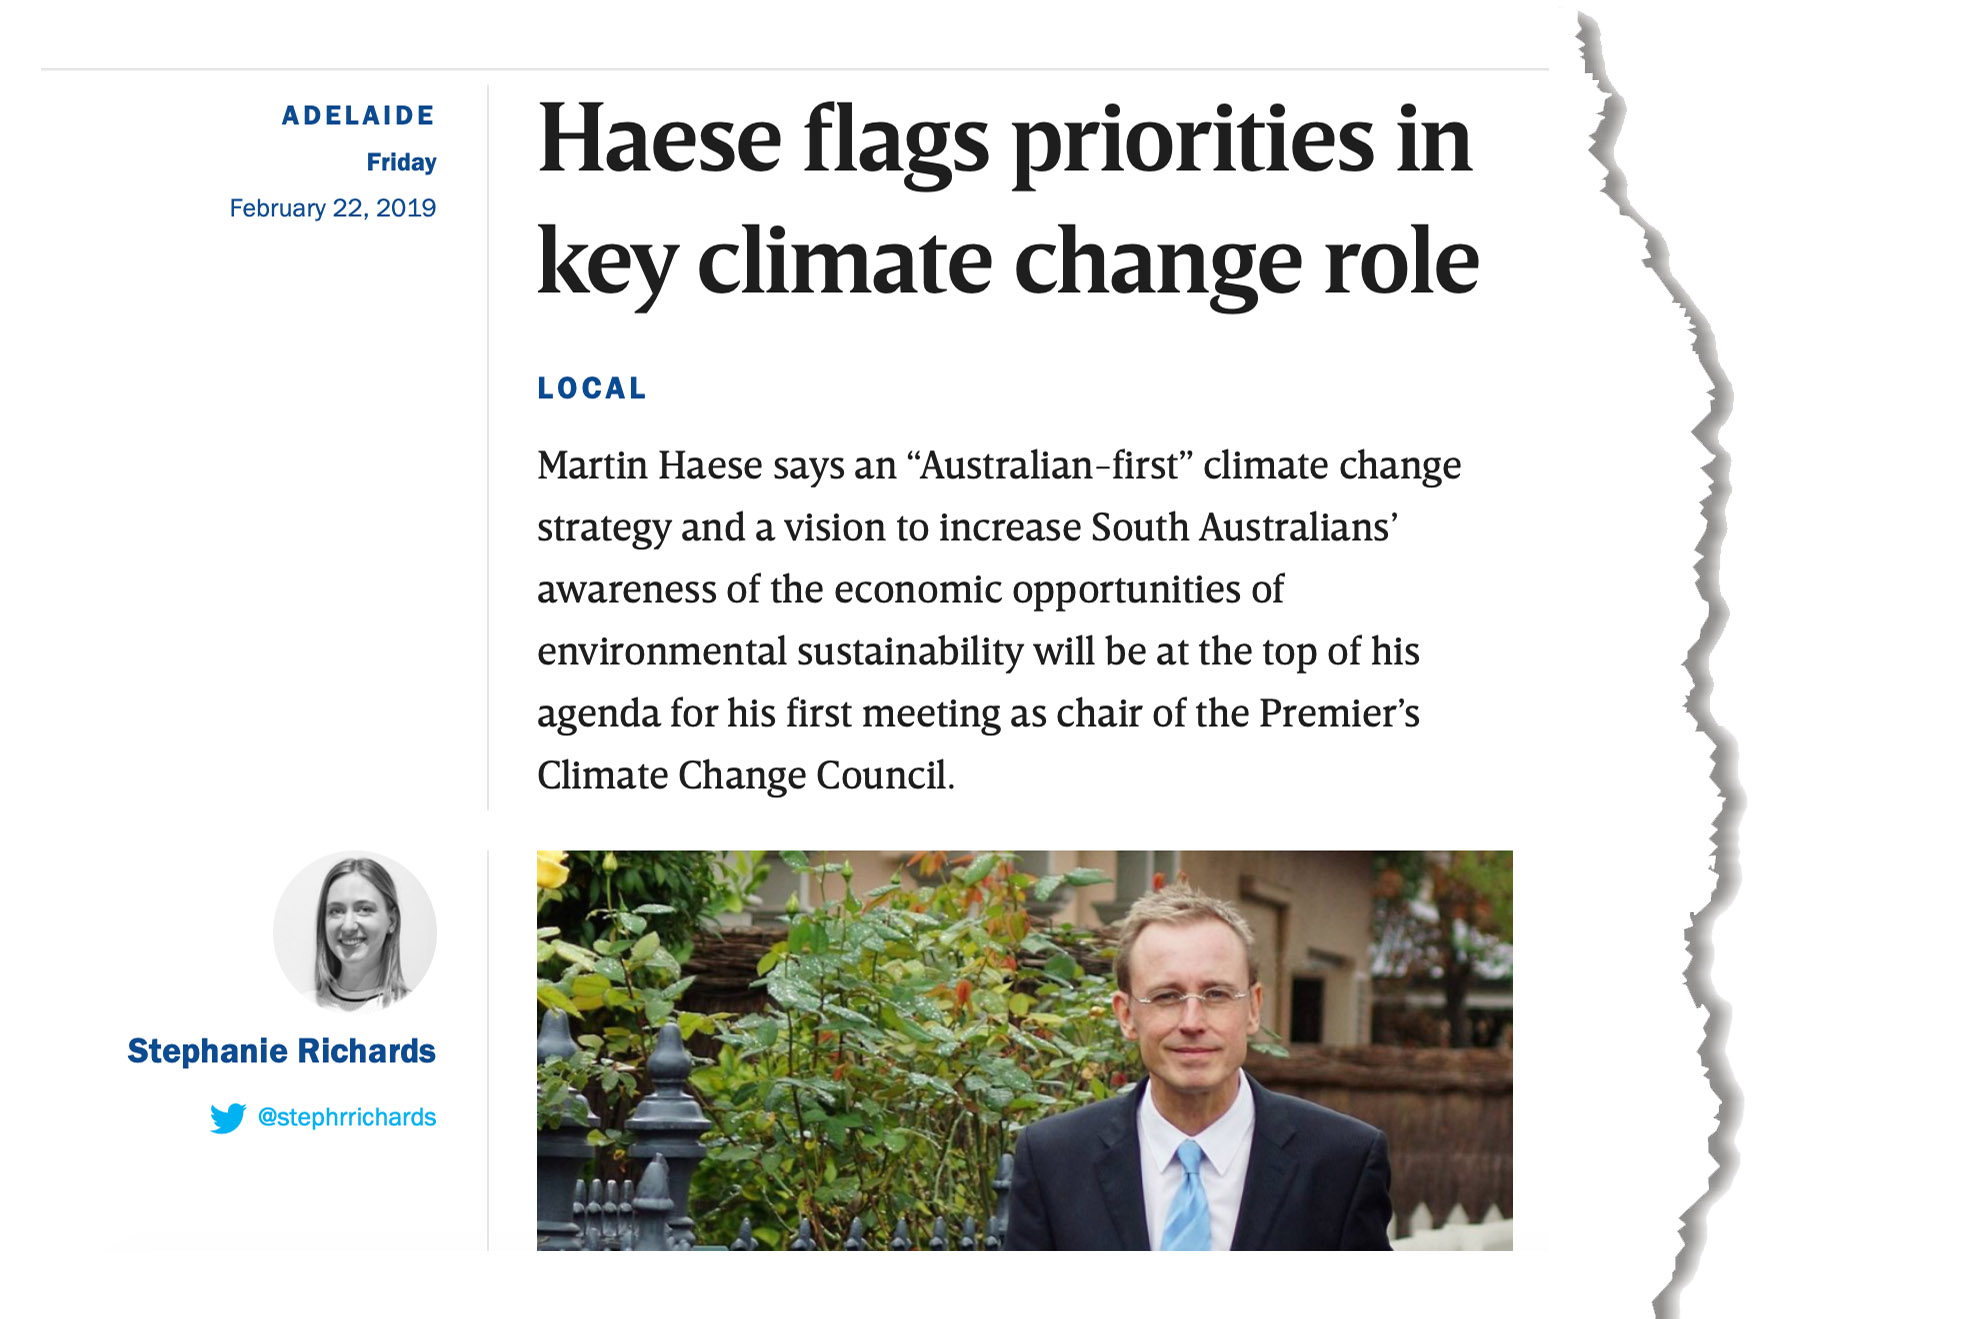 martin-haese-premiers-climate-change-council-in-daily-22-february-2019